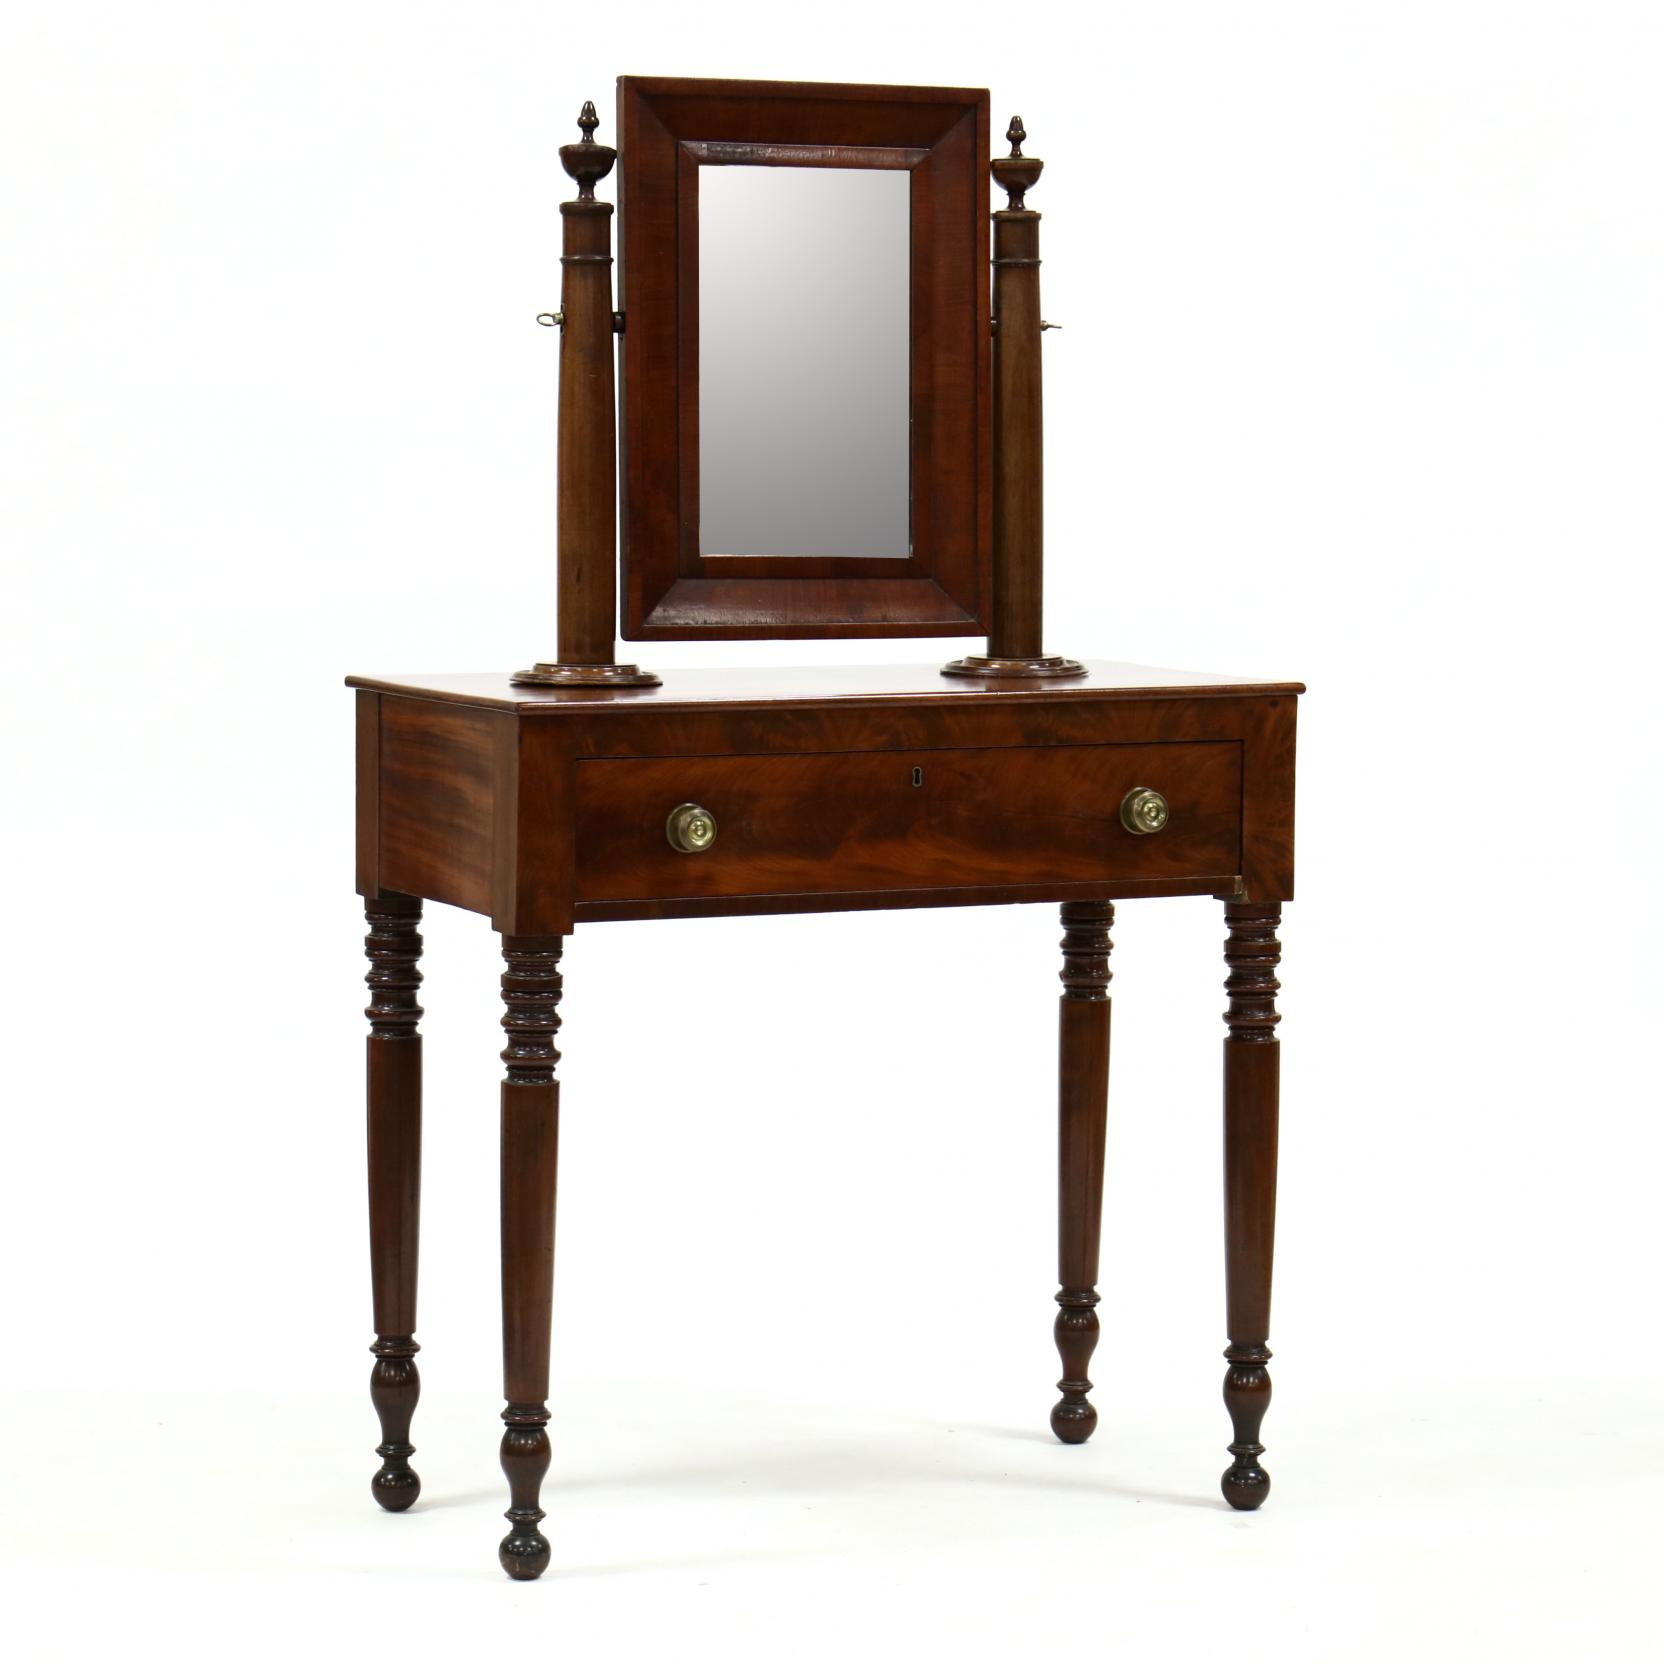 brinning-bast-american-sheraton-dressing-stand